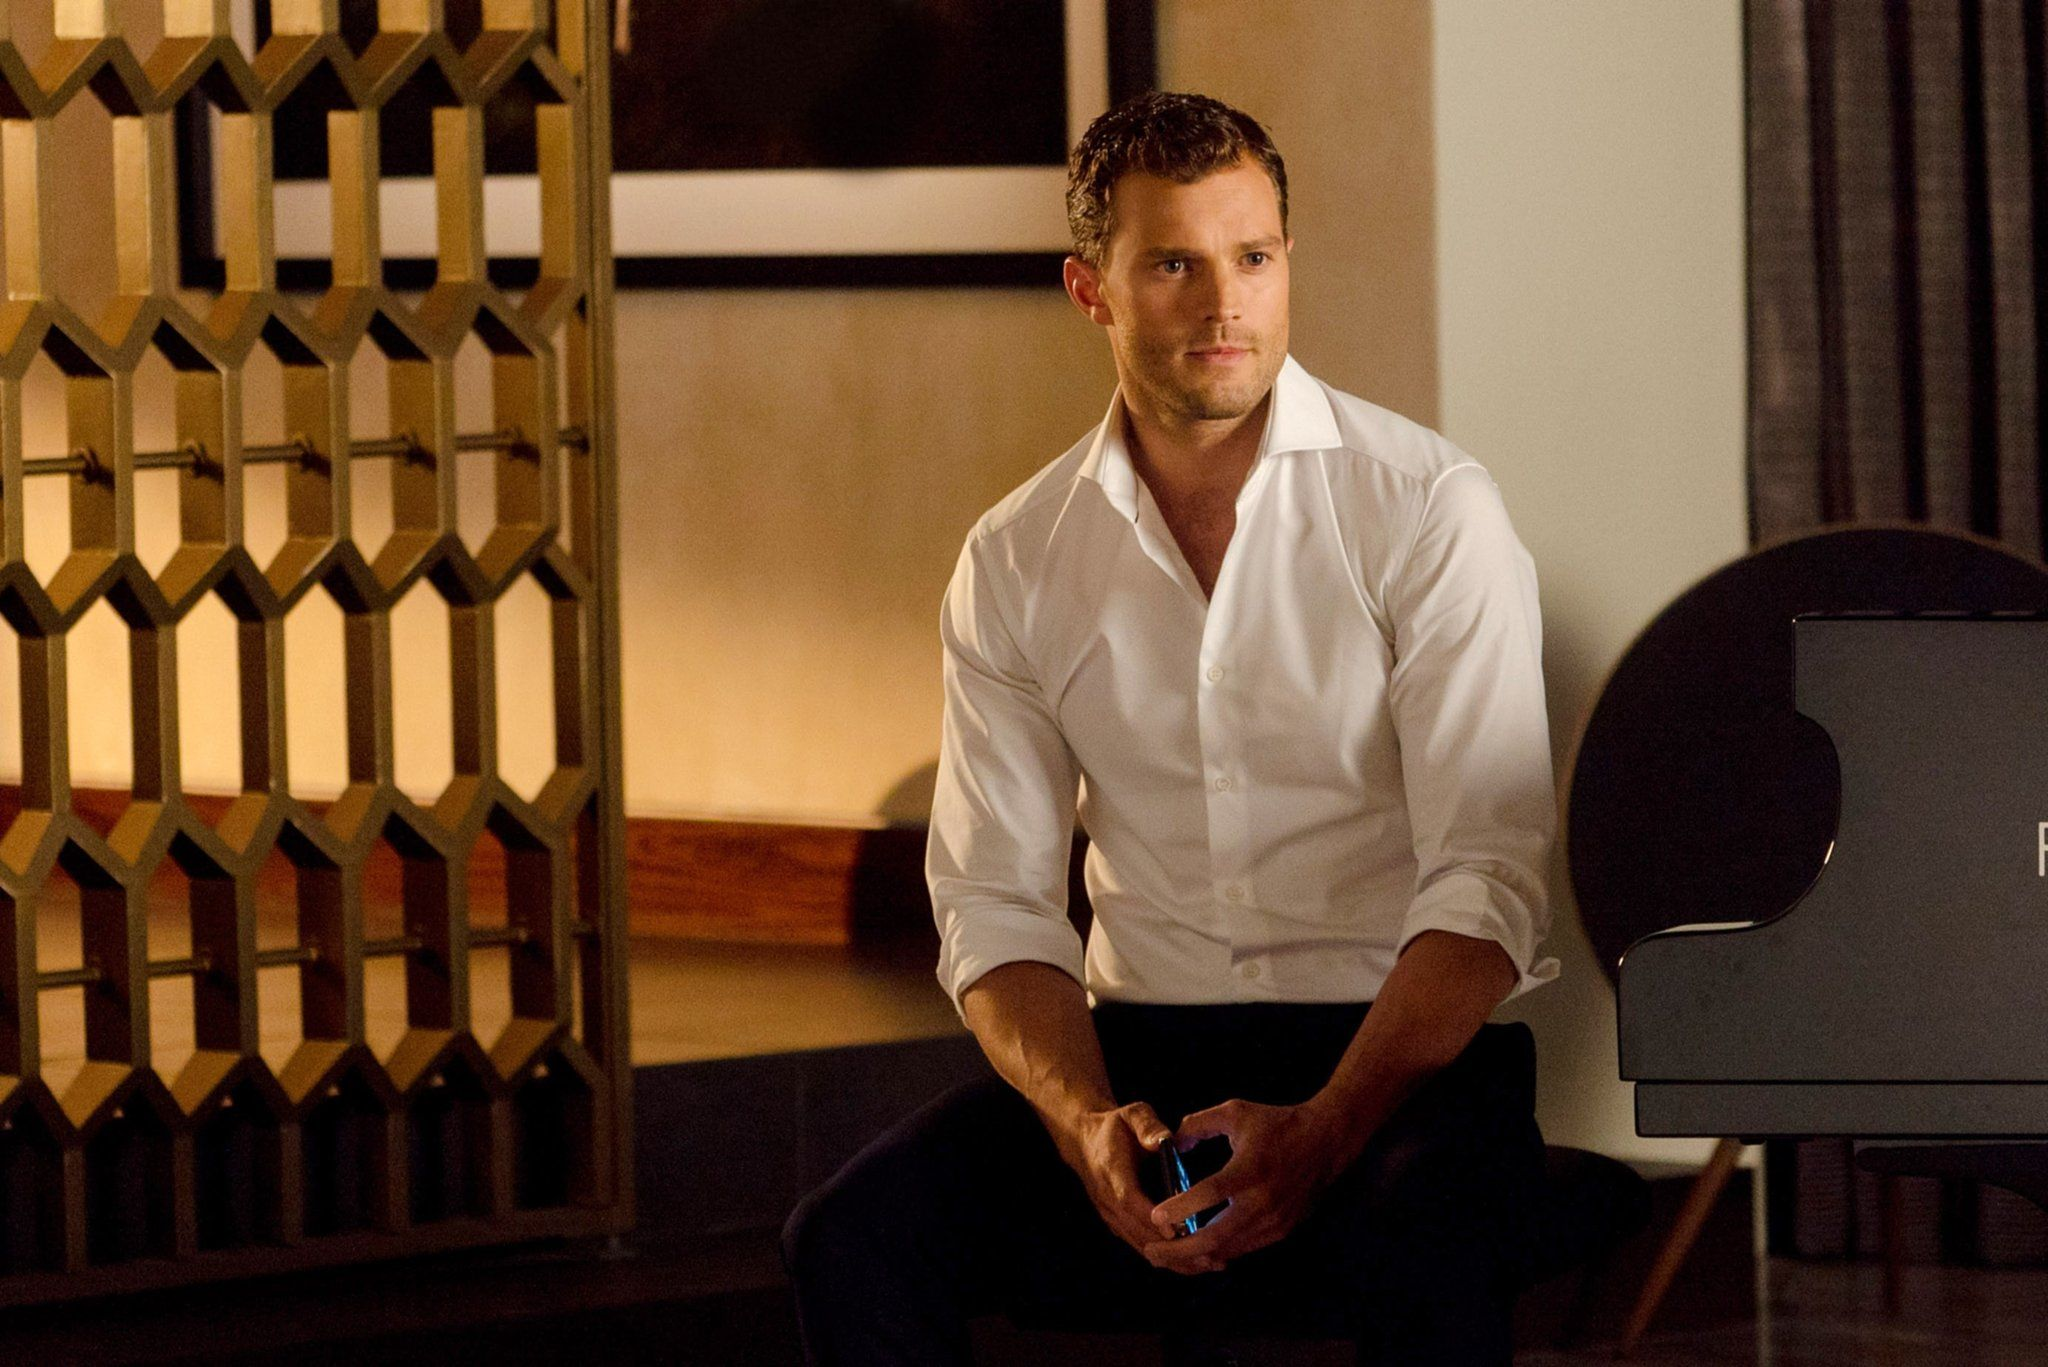 Baby Universal Youtube The Christian Grey 39;darker 39; Book Sequel Finally Has A